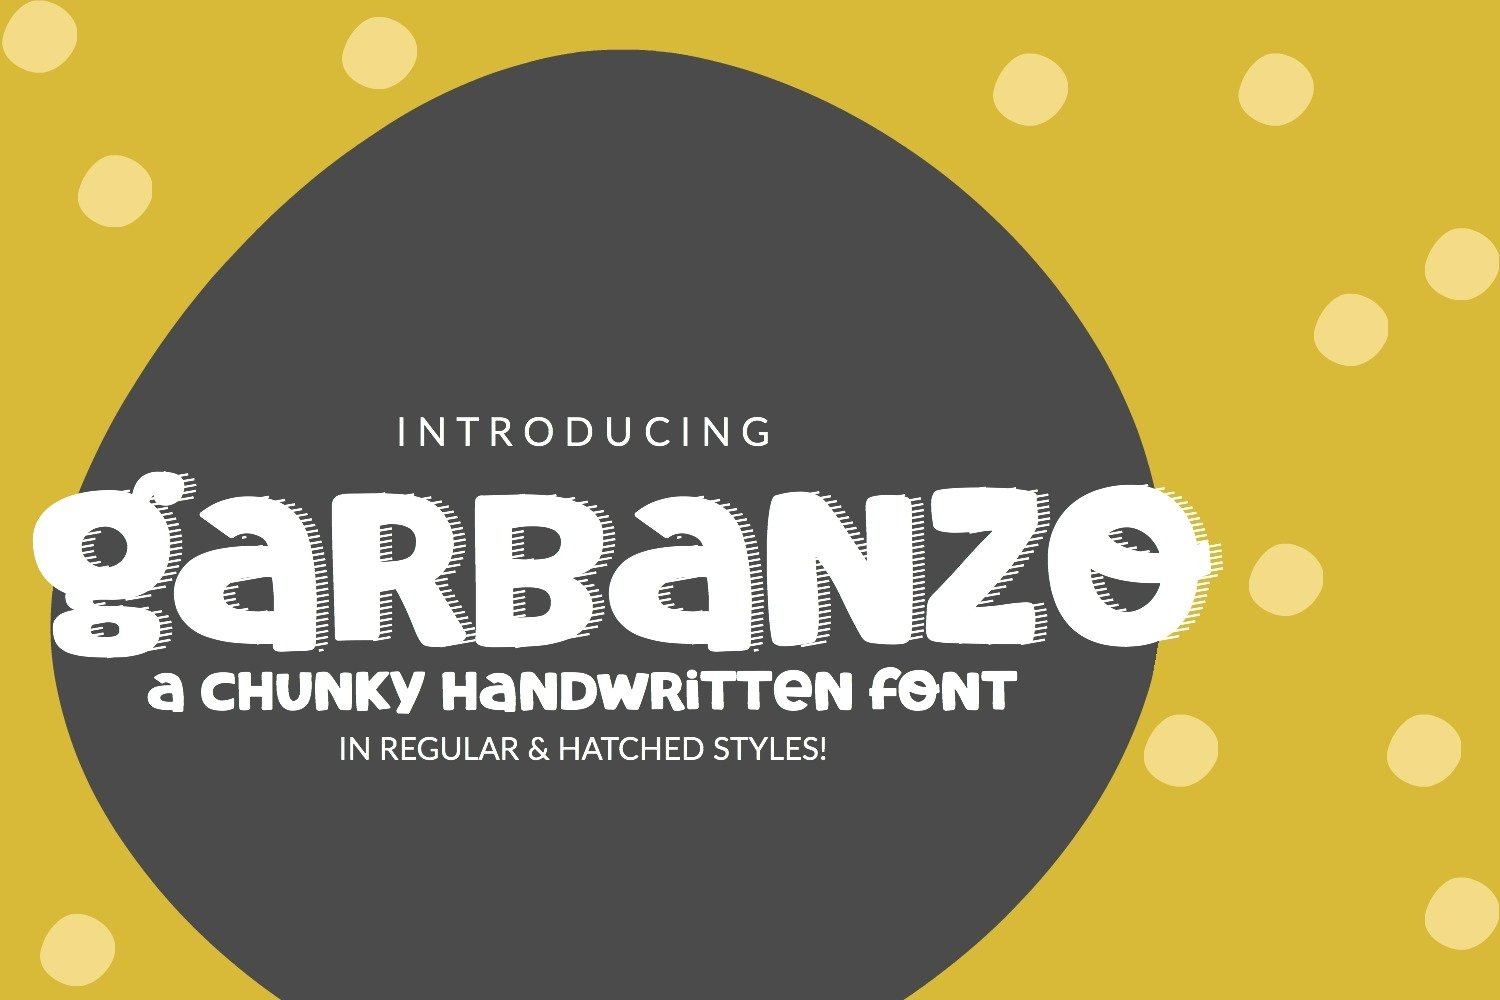 Crafter Handwritten Font Bundle- 7 Smooth Cuttable Fonts example image 23